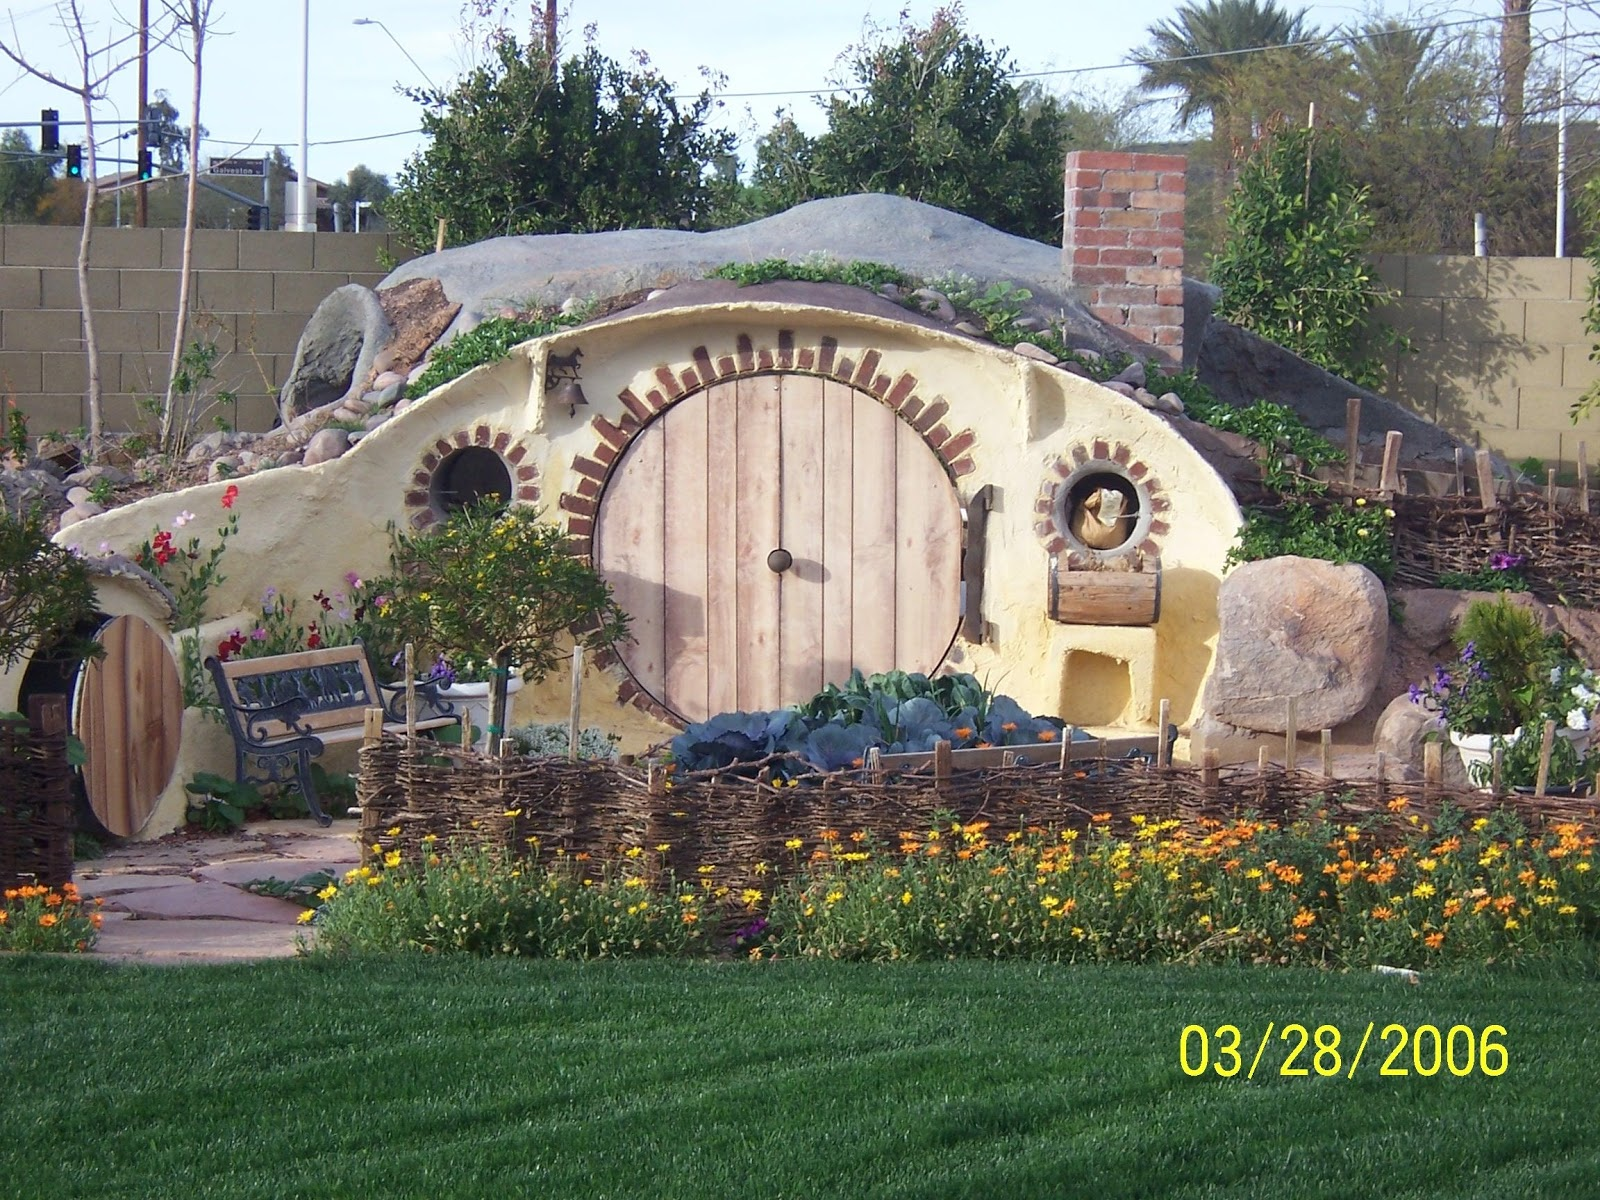 how can you possibly build a hobbit hole in your own backyard